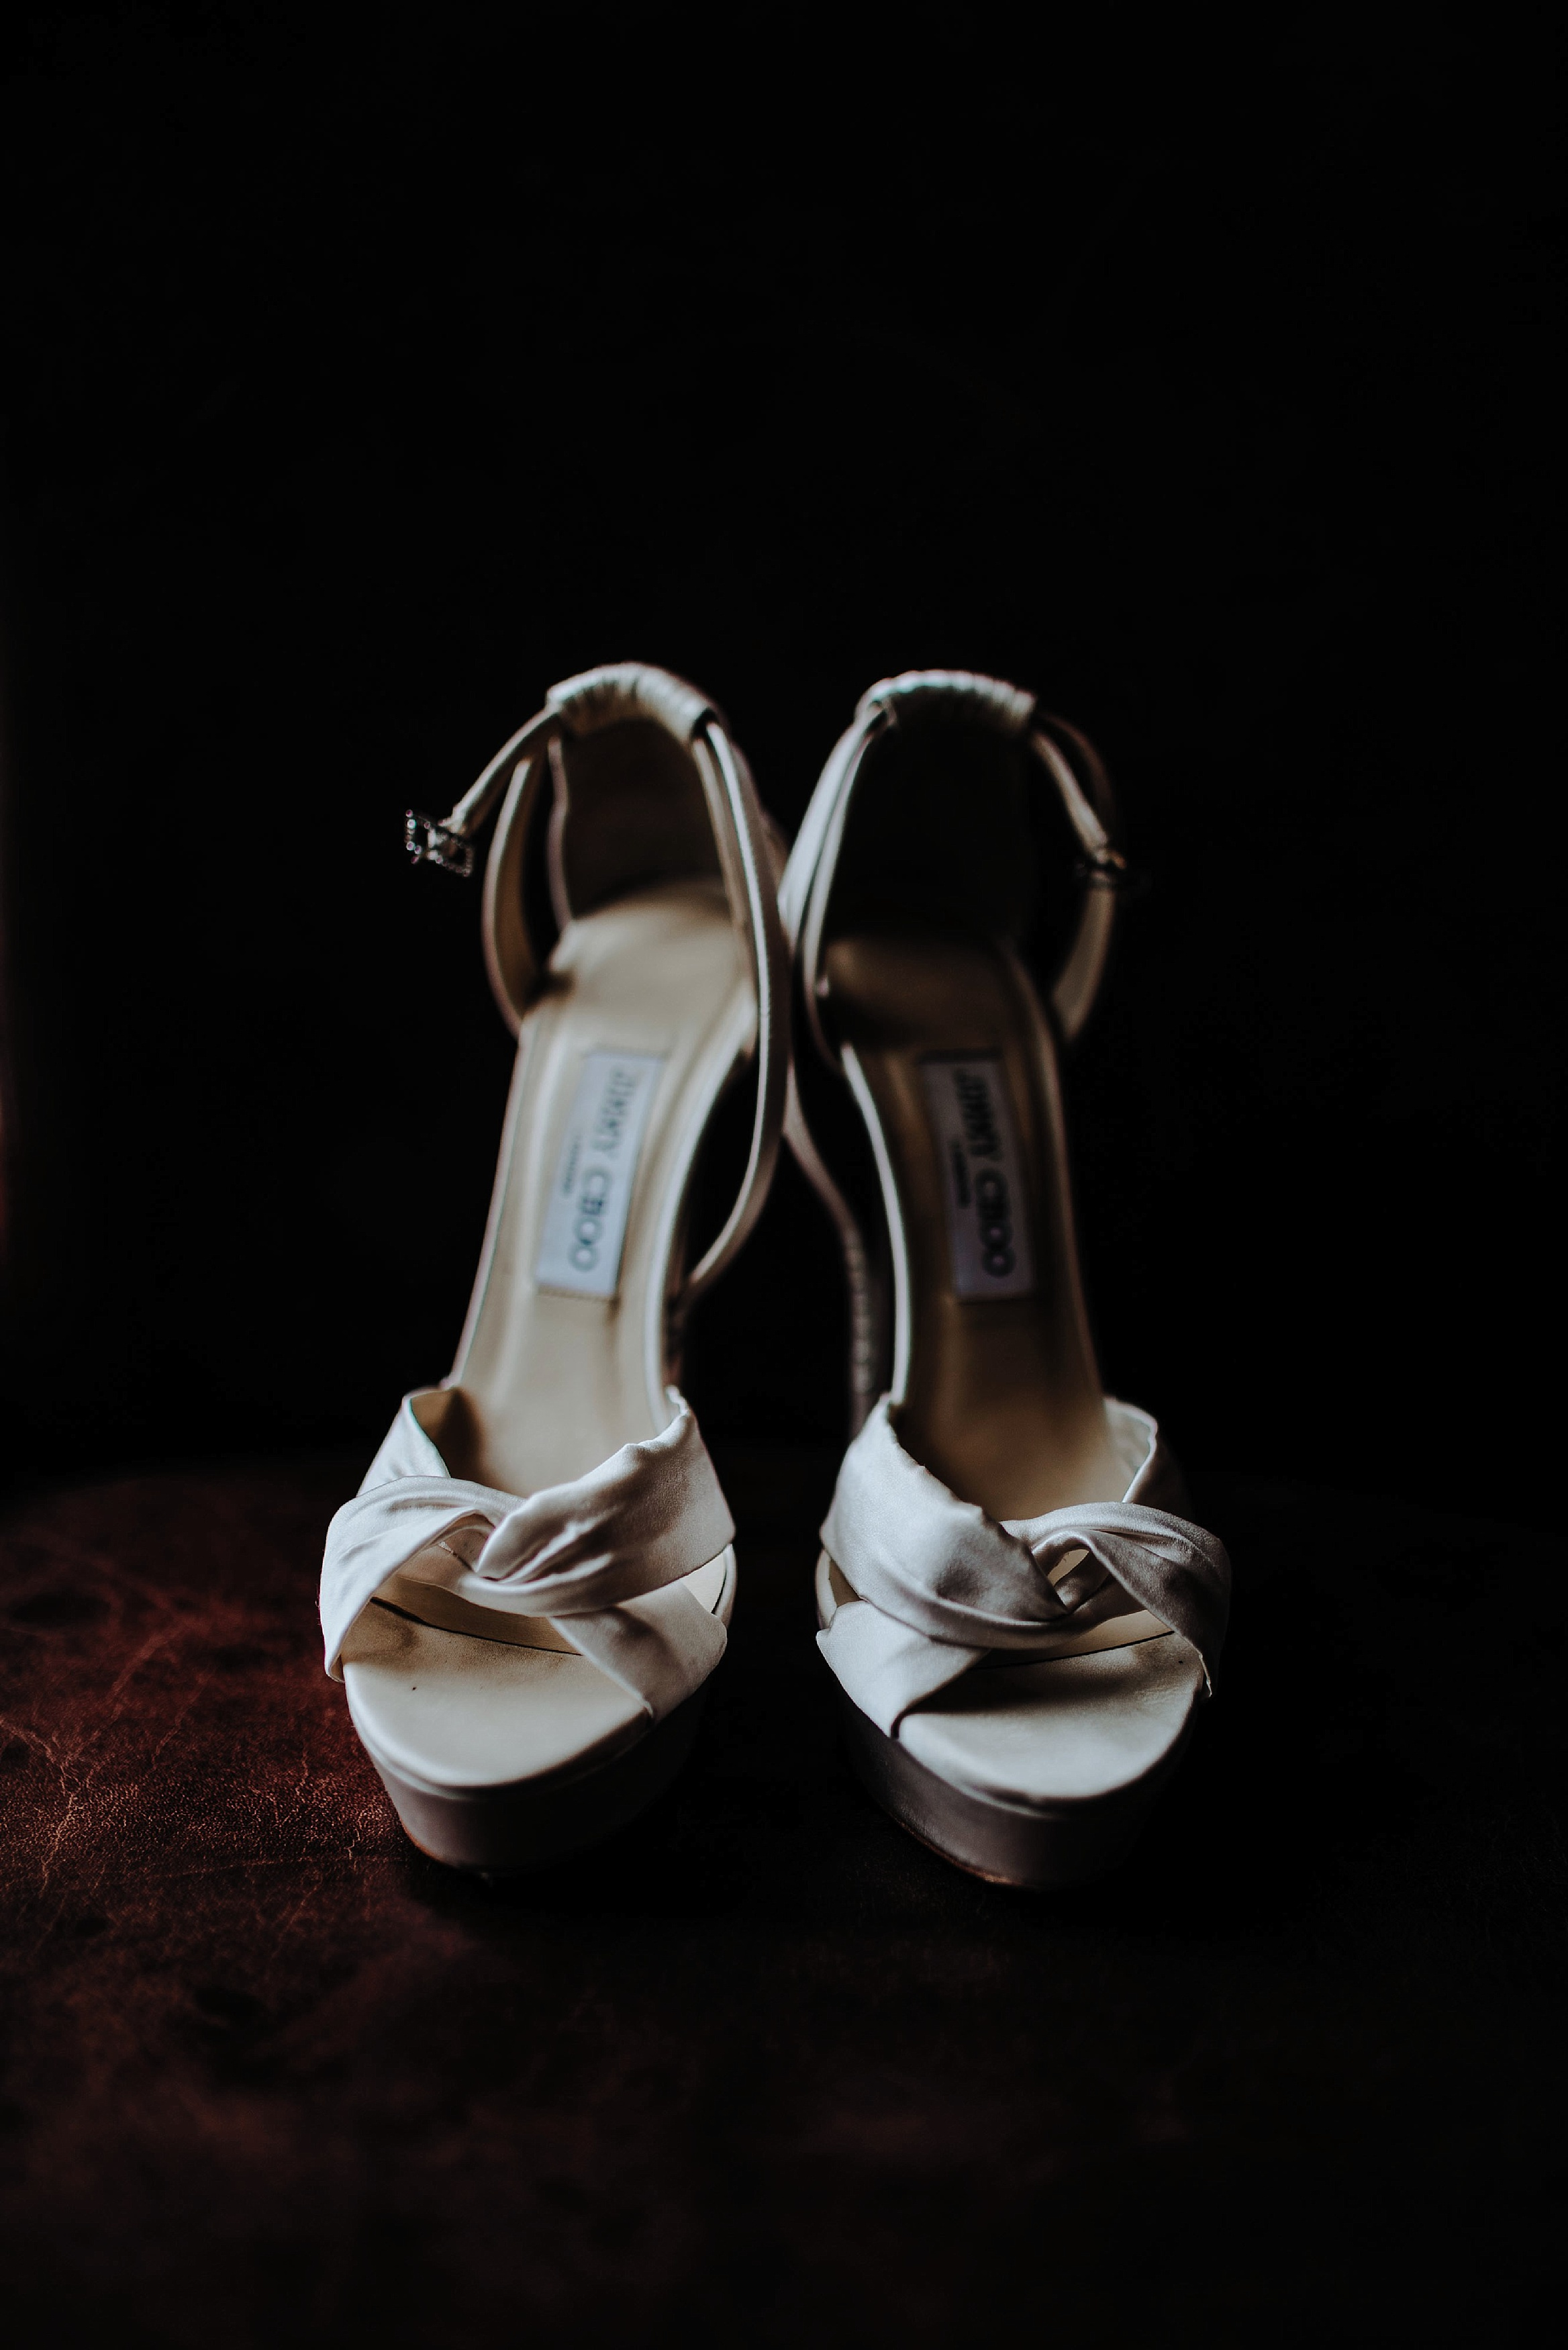 Jimmy Choo heels at a Scottish Wedding